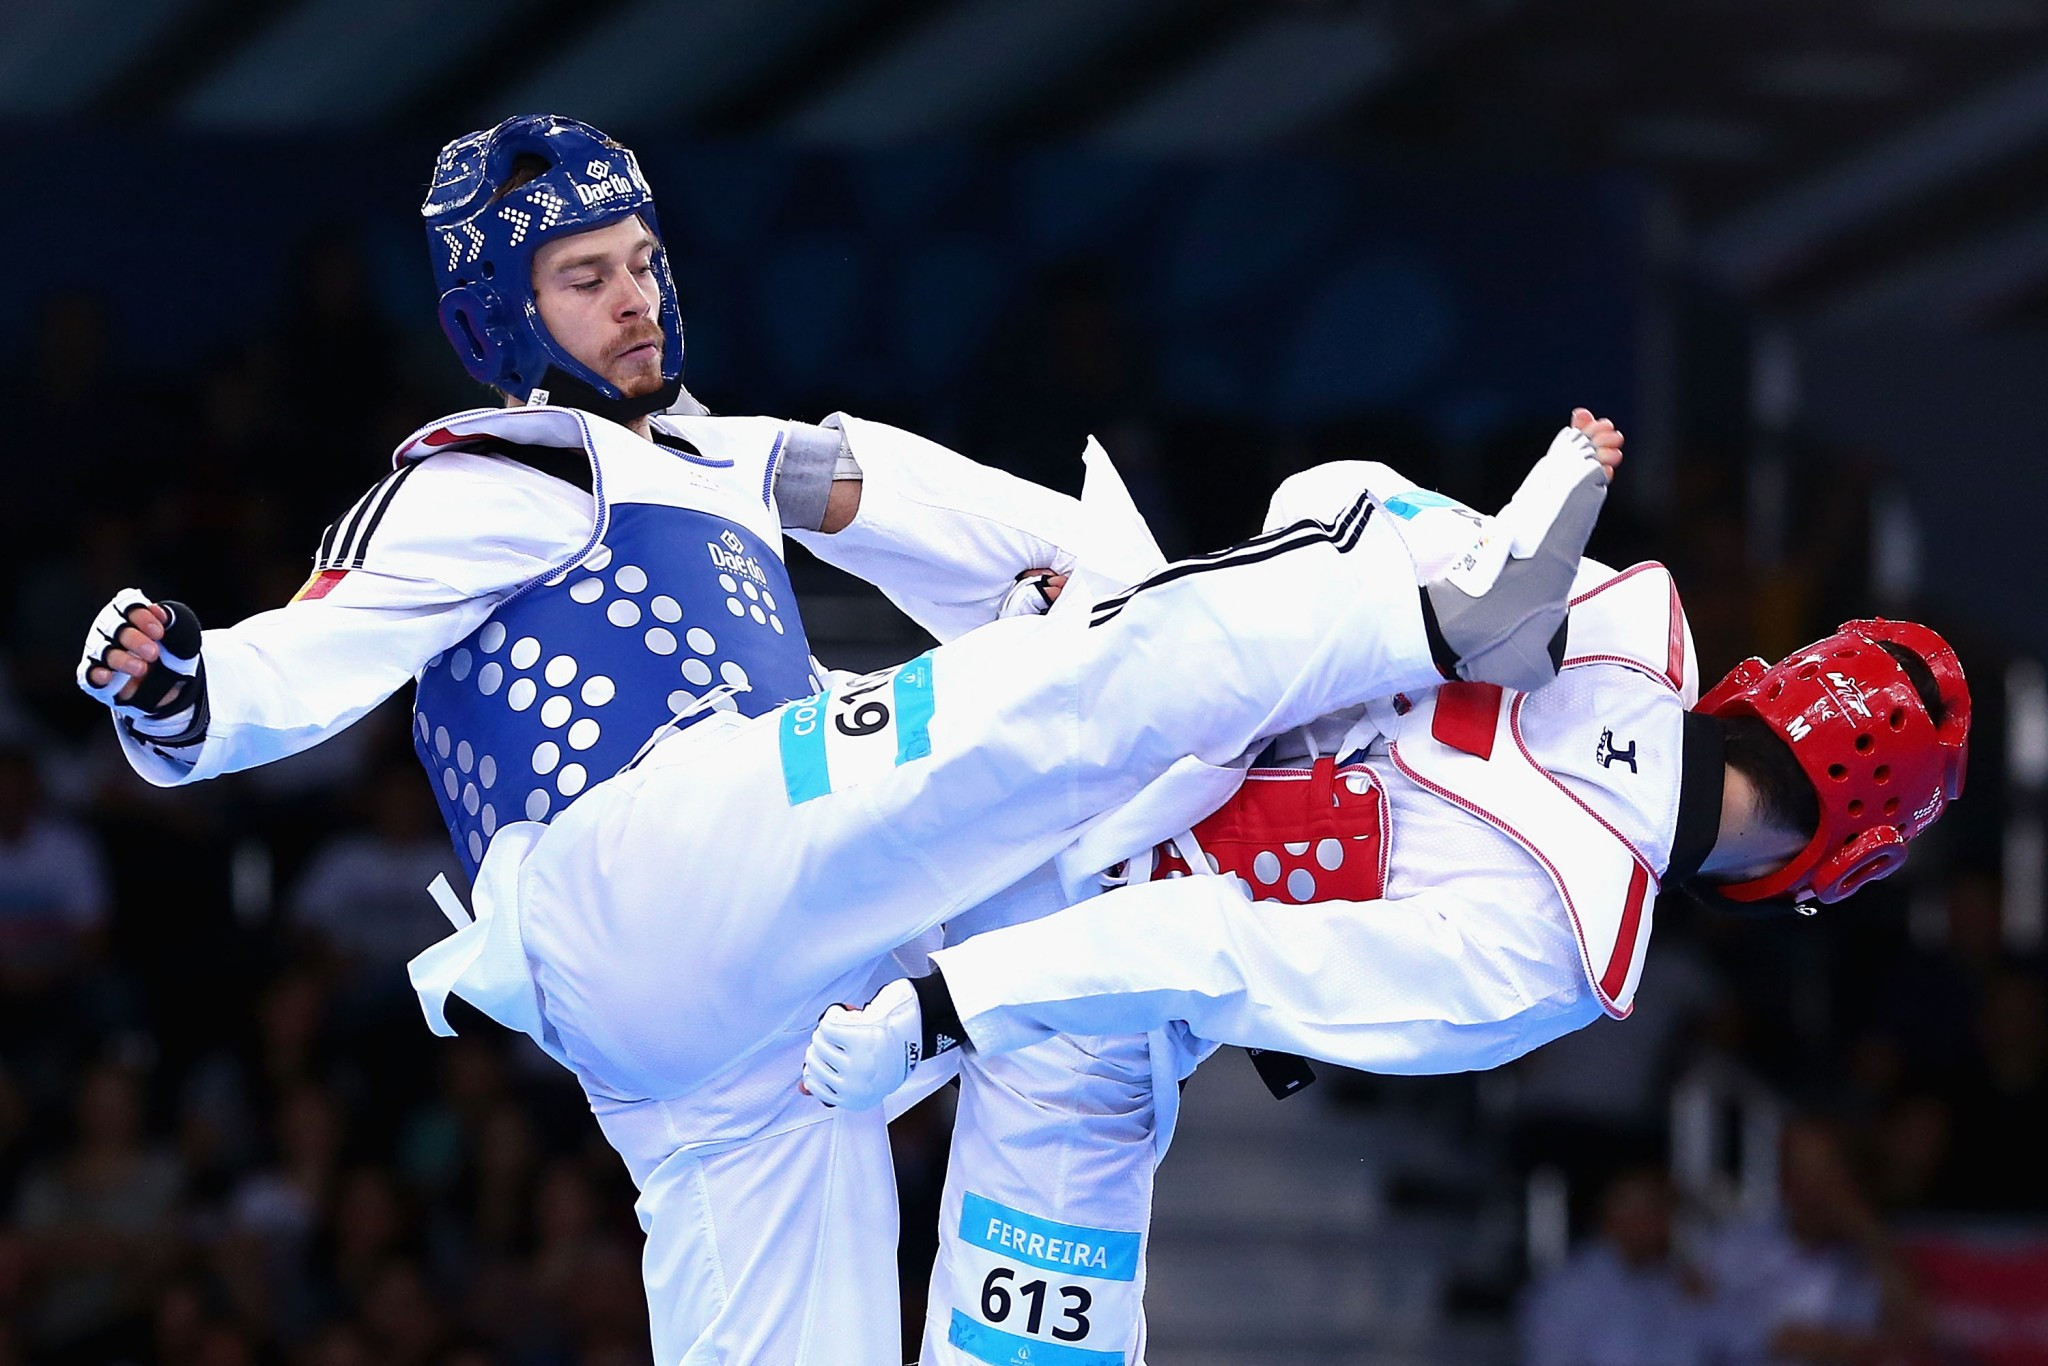 Aaron Cook has boosted taekwondo in Moldova after switching to the country ©Getty Images